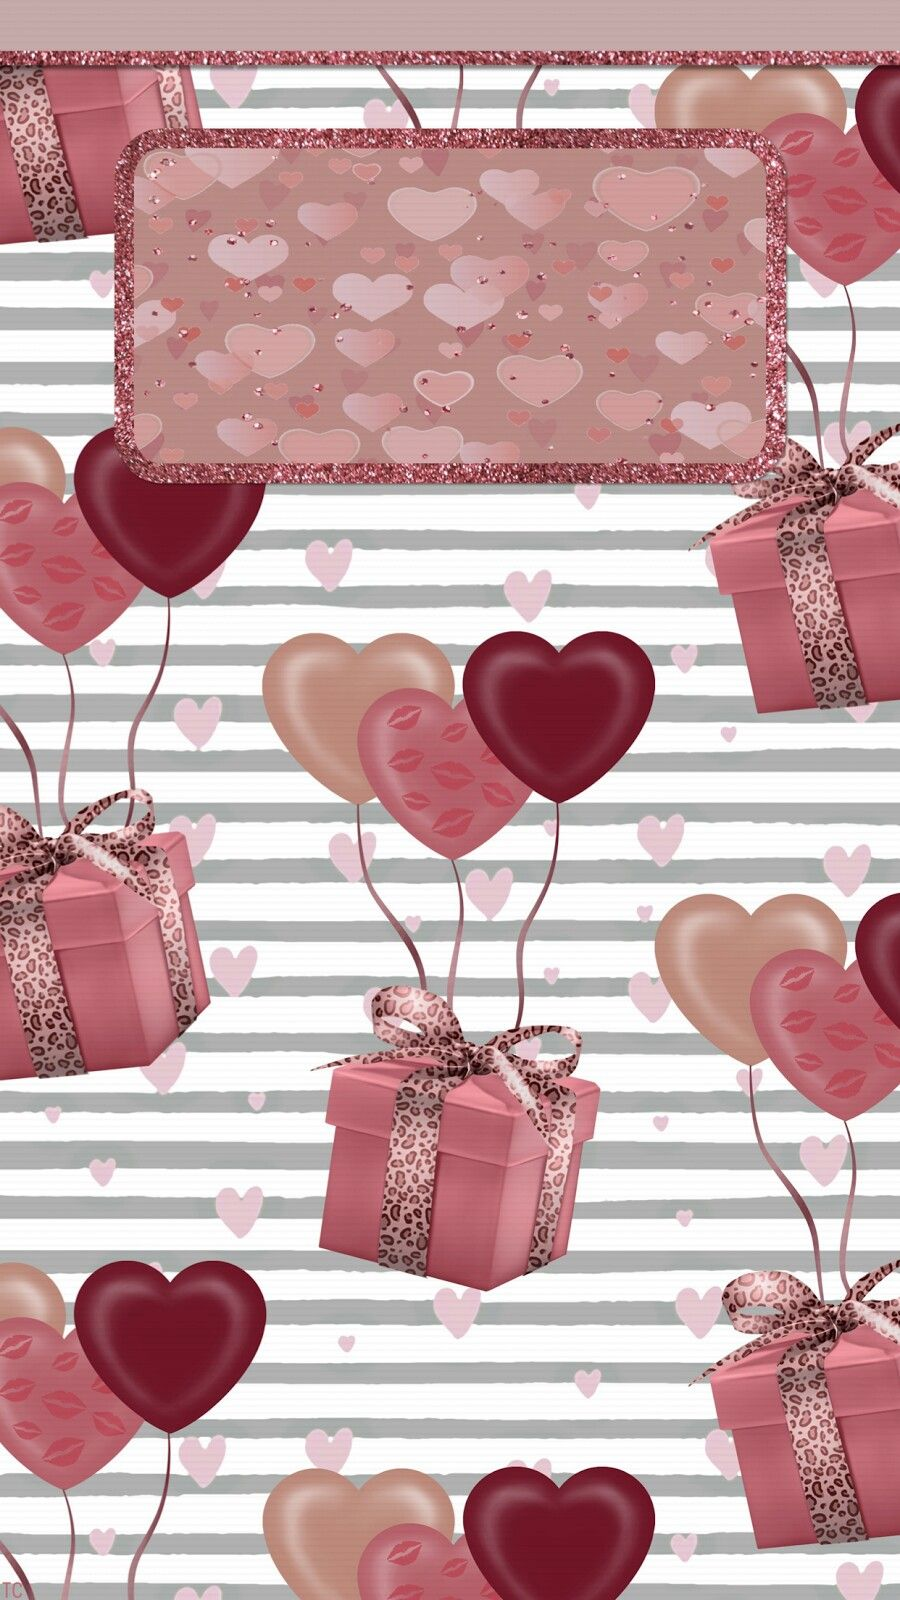 Cute Valentines Day Wallpaper Iphone Valentines Wallpaper Valentine Background Valentines Day Background